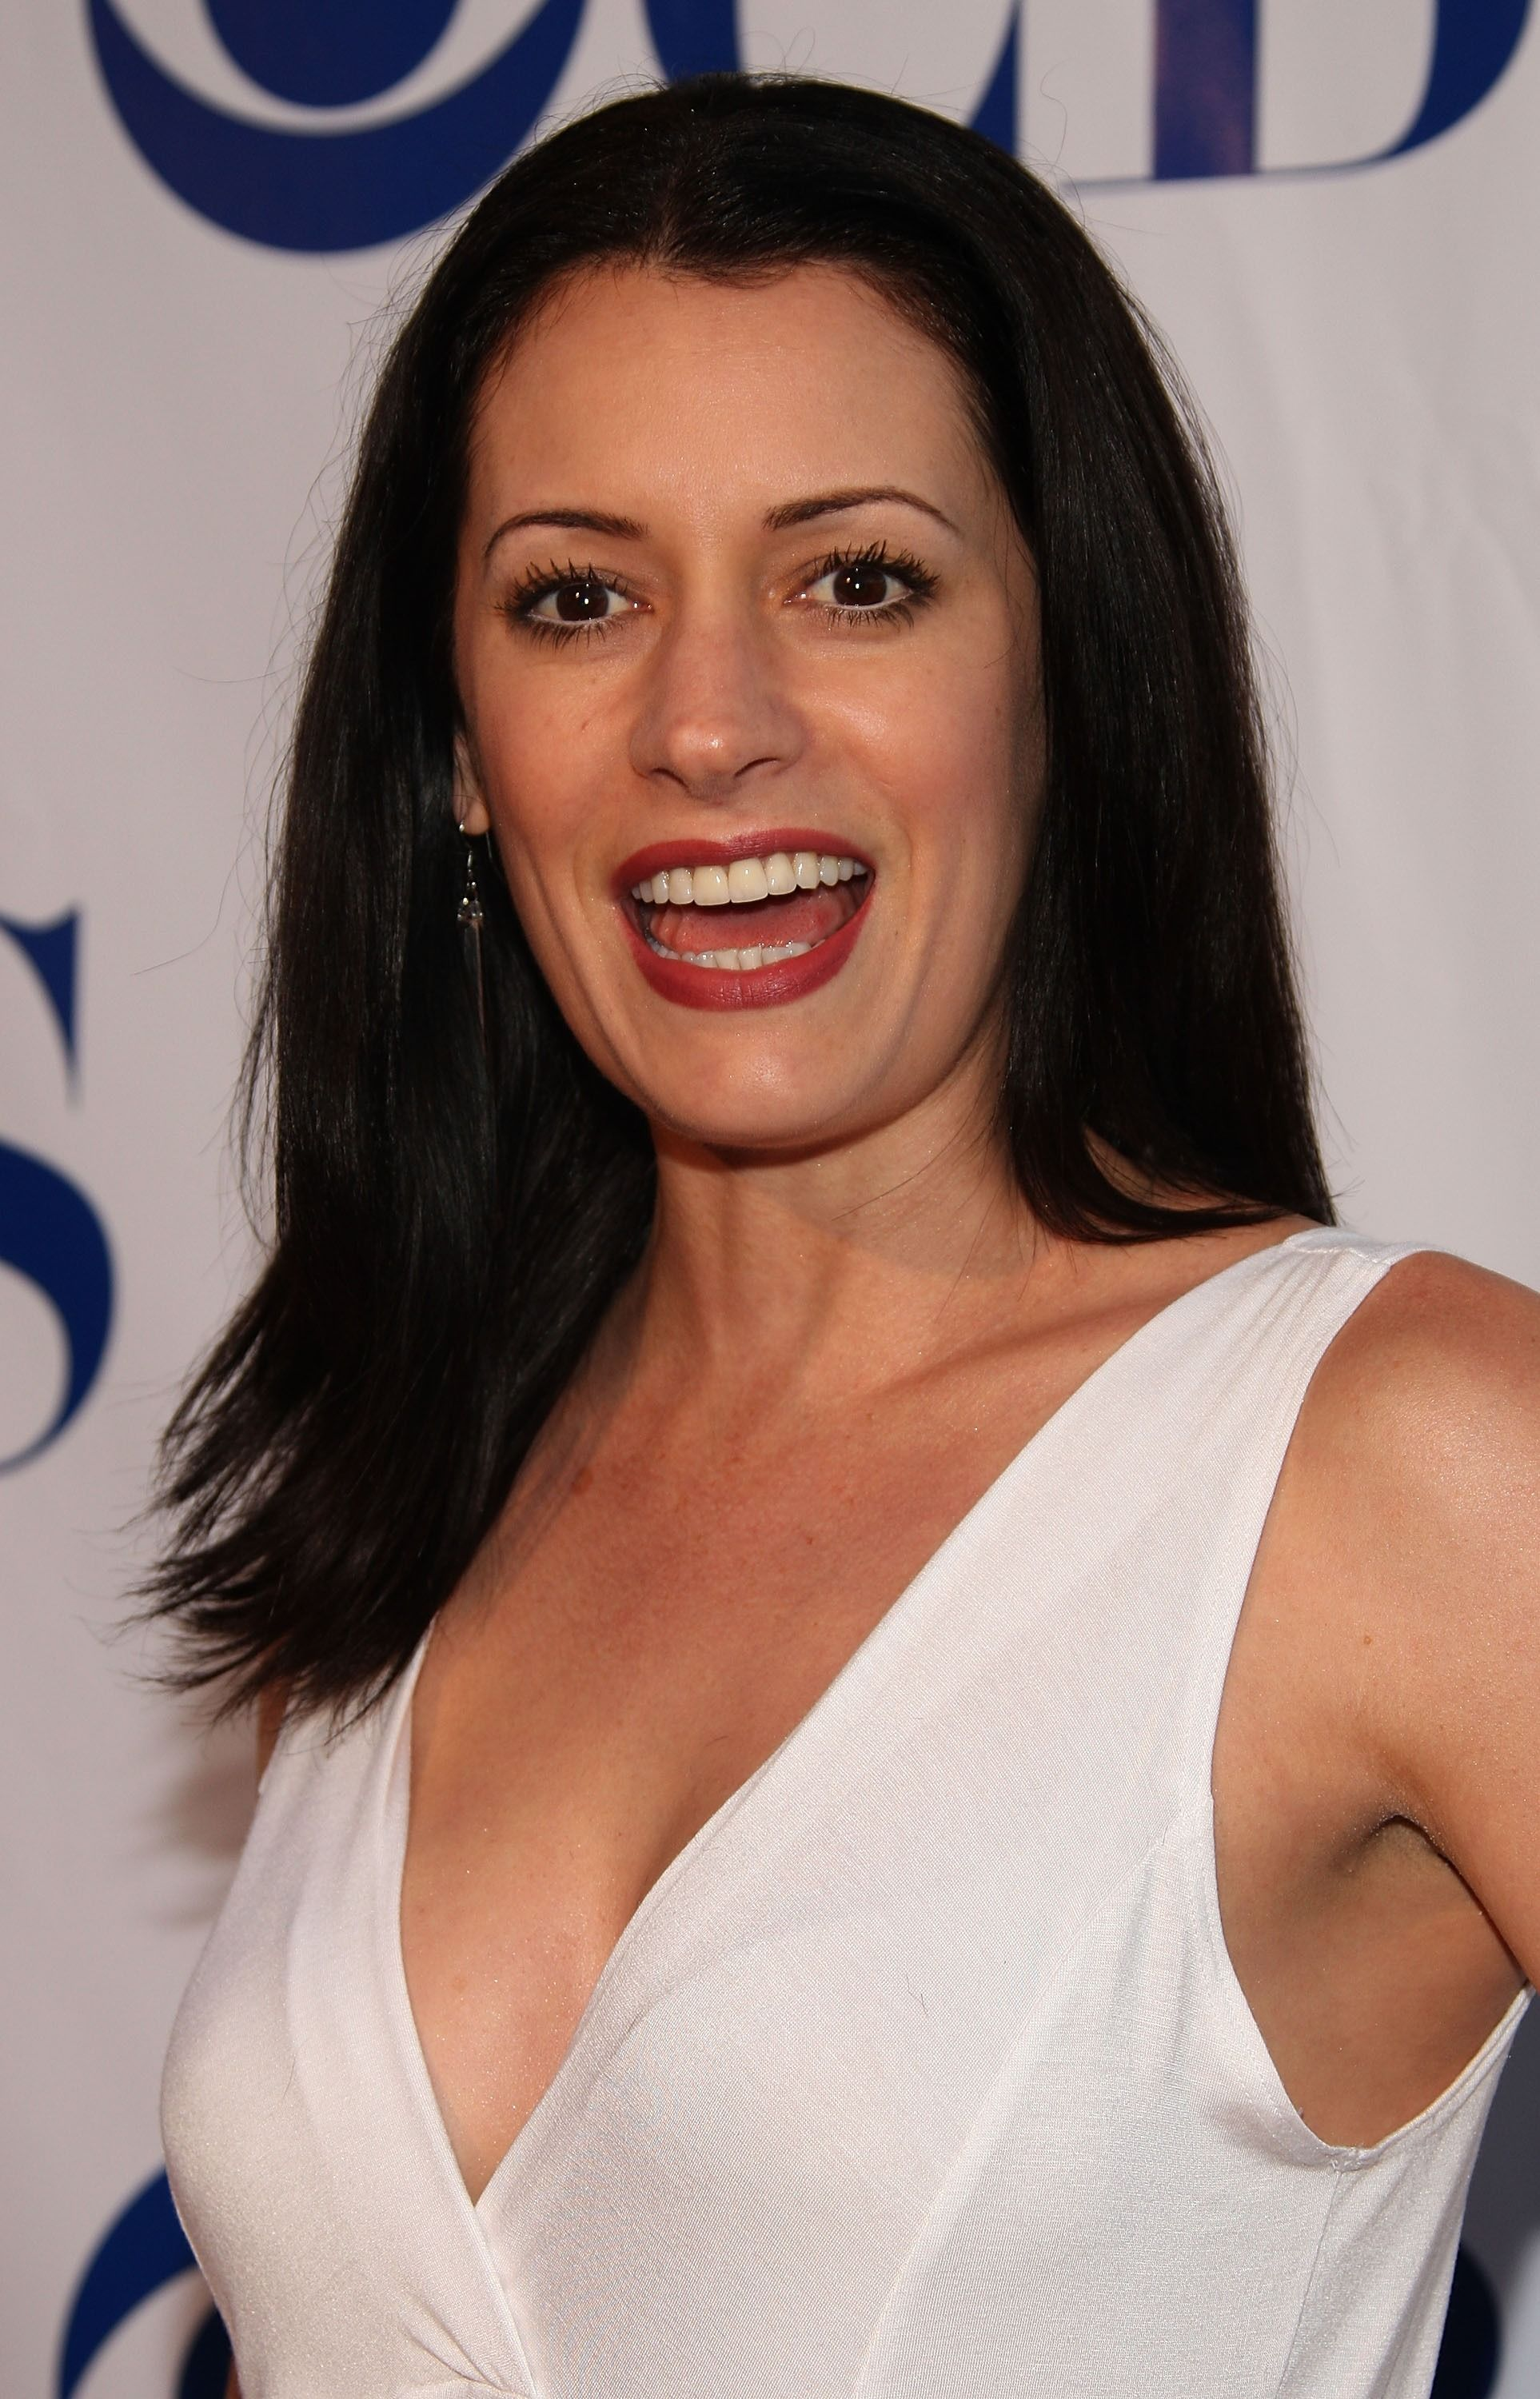 paget brewster husbandpaget brewster friends, paget brewster husband, paget brewster imdb, paget brewster nails, paget brewster nationality, paget brewster wiki, paget brewster and steve damstra, paget brewster ig, paget brewster net worth, paget brewster instagram, paget brewster twitter, paget brewster criminal minds, paget brewster photo gallery, paget brewster salary, paget brewster emily prentiss